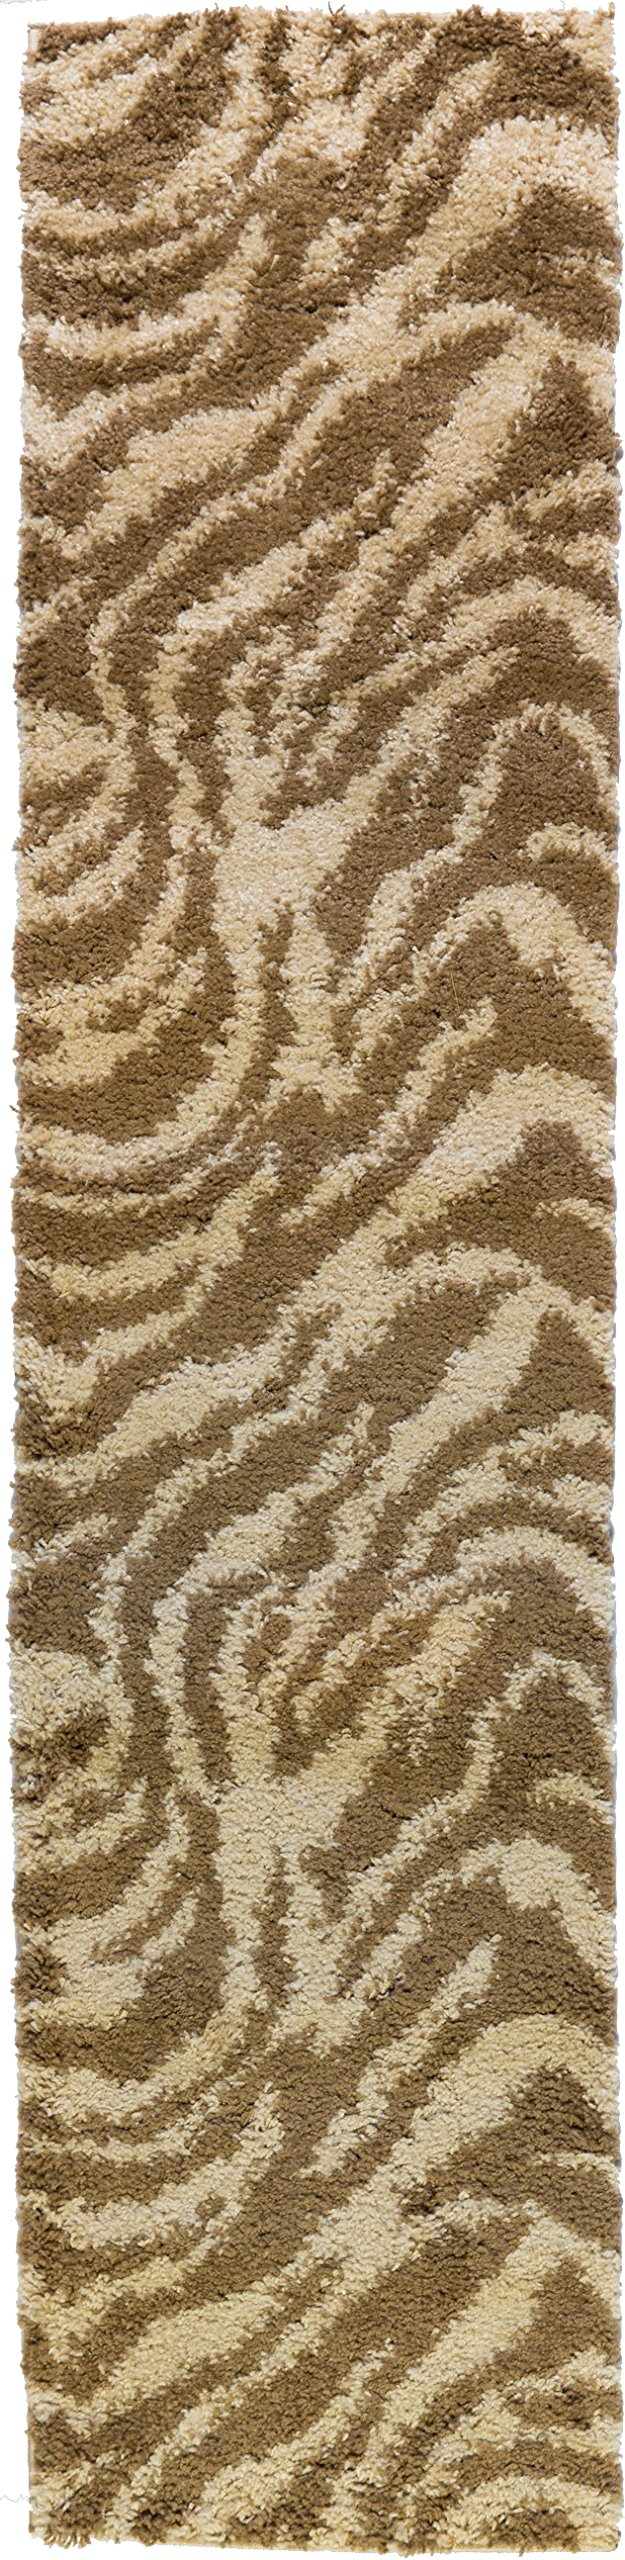 Well Woven Runner Rug Madison Shag Safari Zebra Brown Animal Print 20'' X 7'2'' Flokati Soft Plush Thick Rug 7038